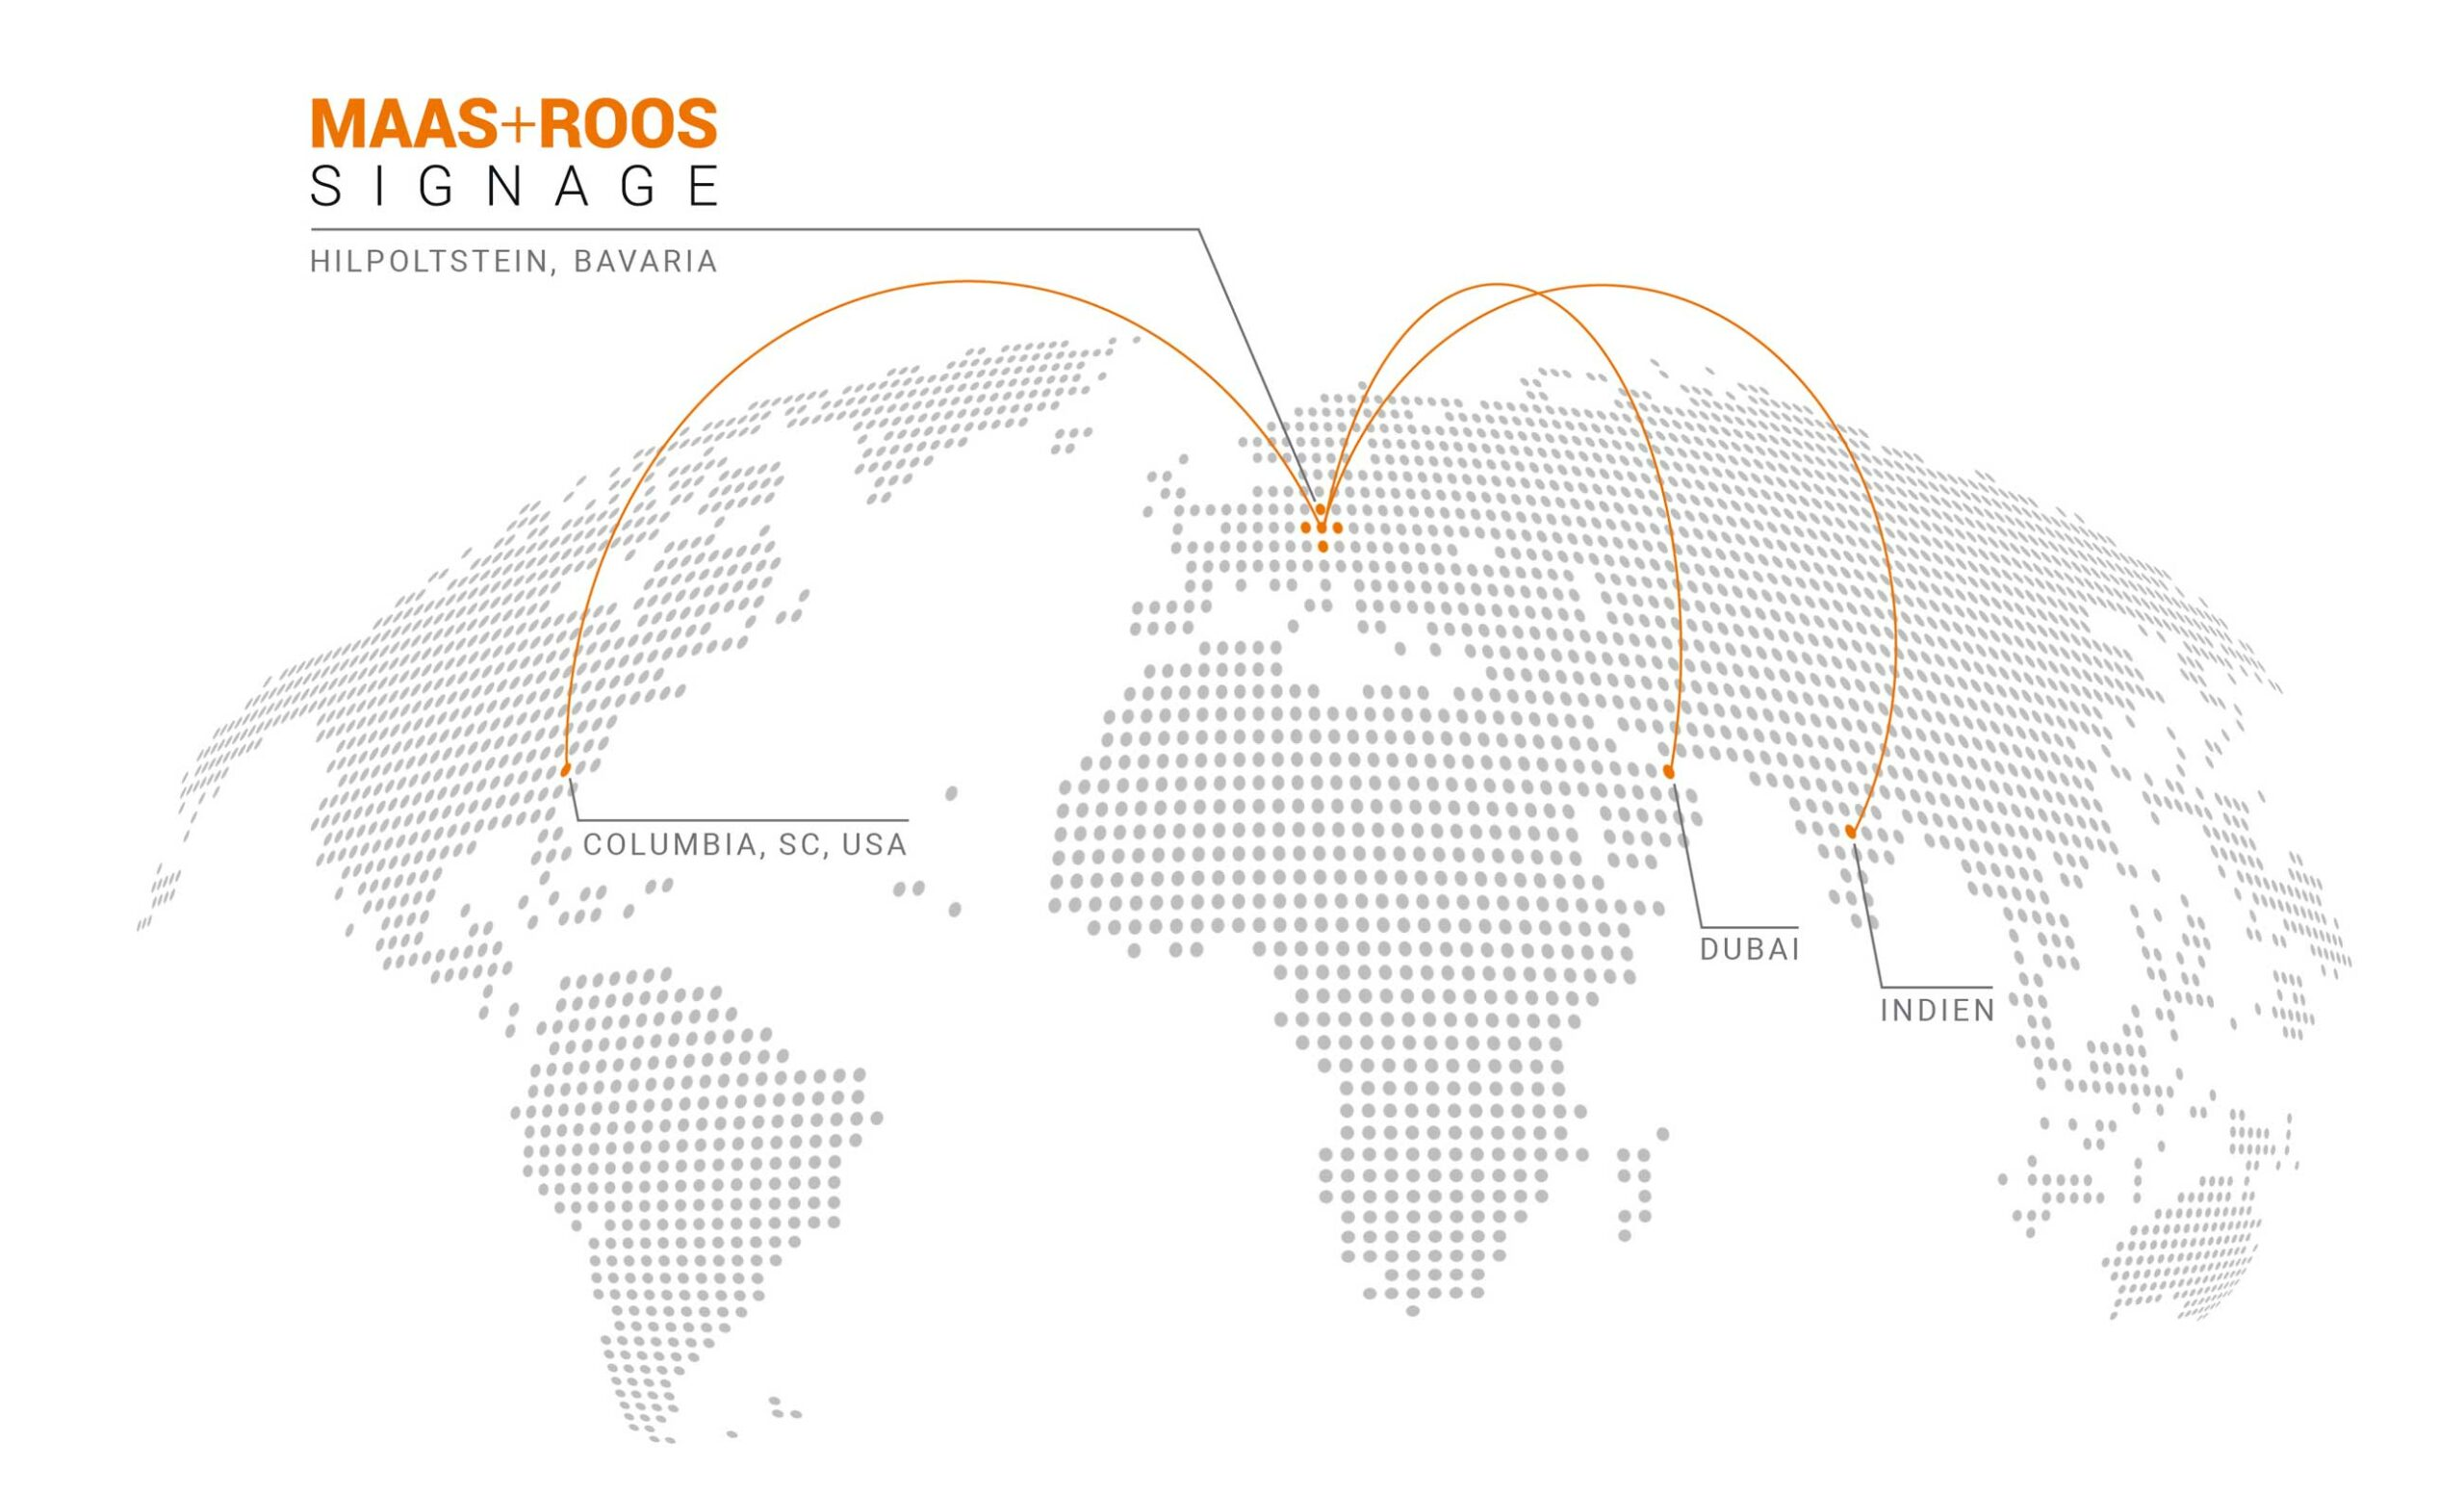 Illustrative presentation of the Maasroos network